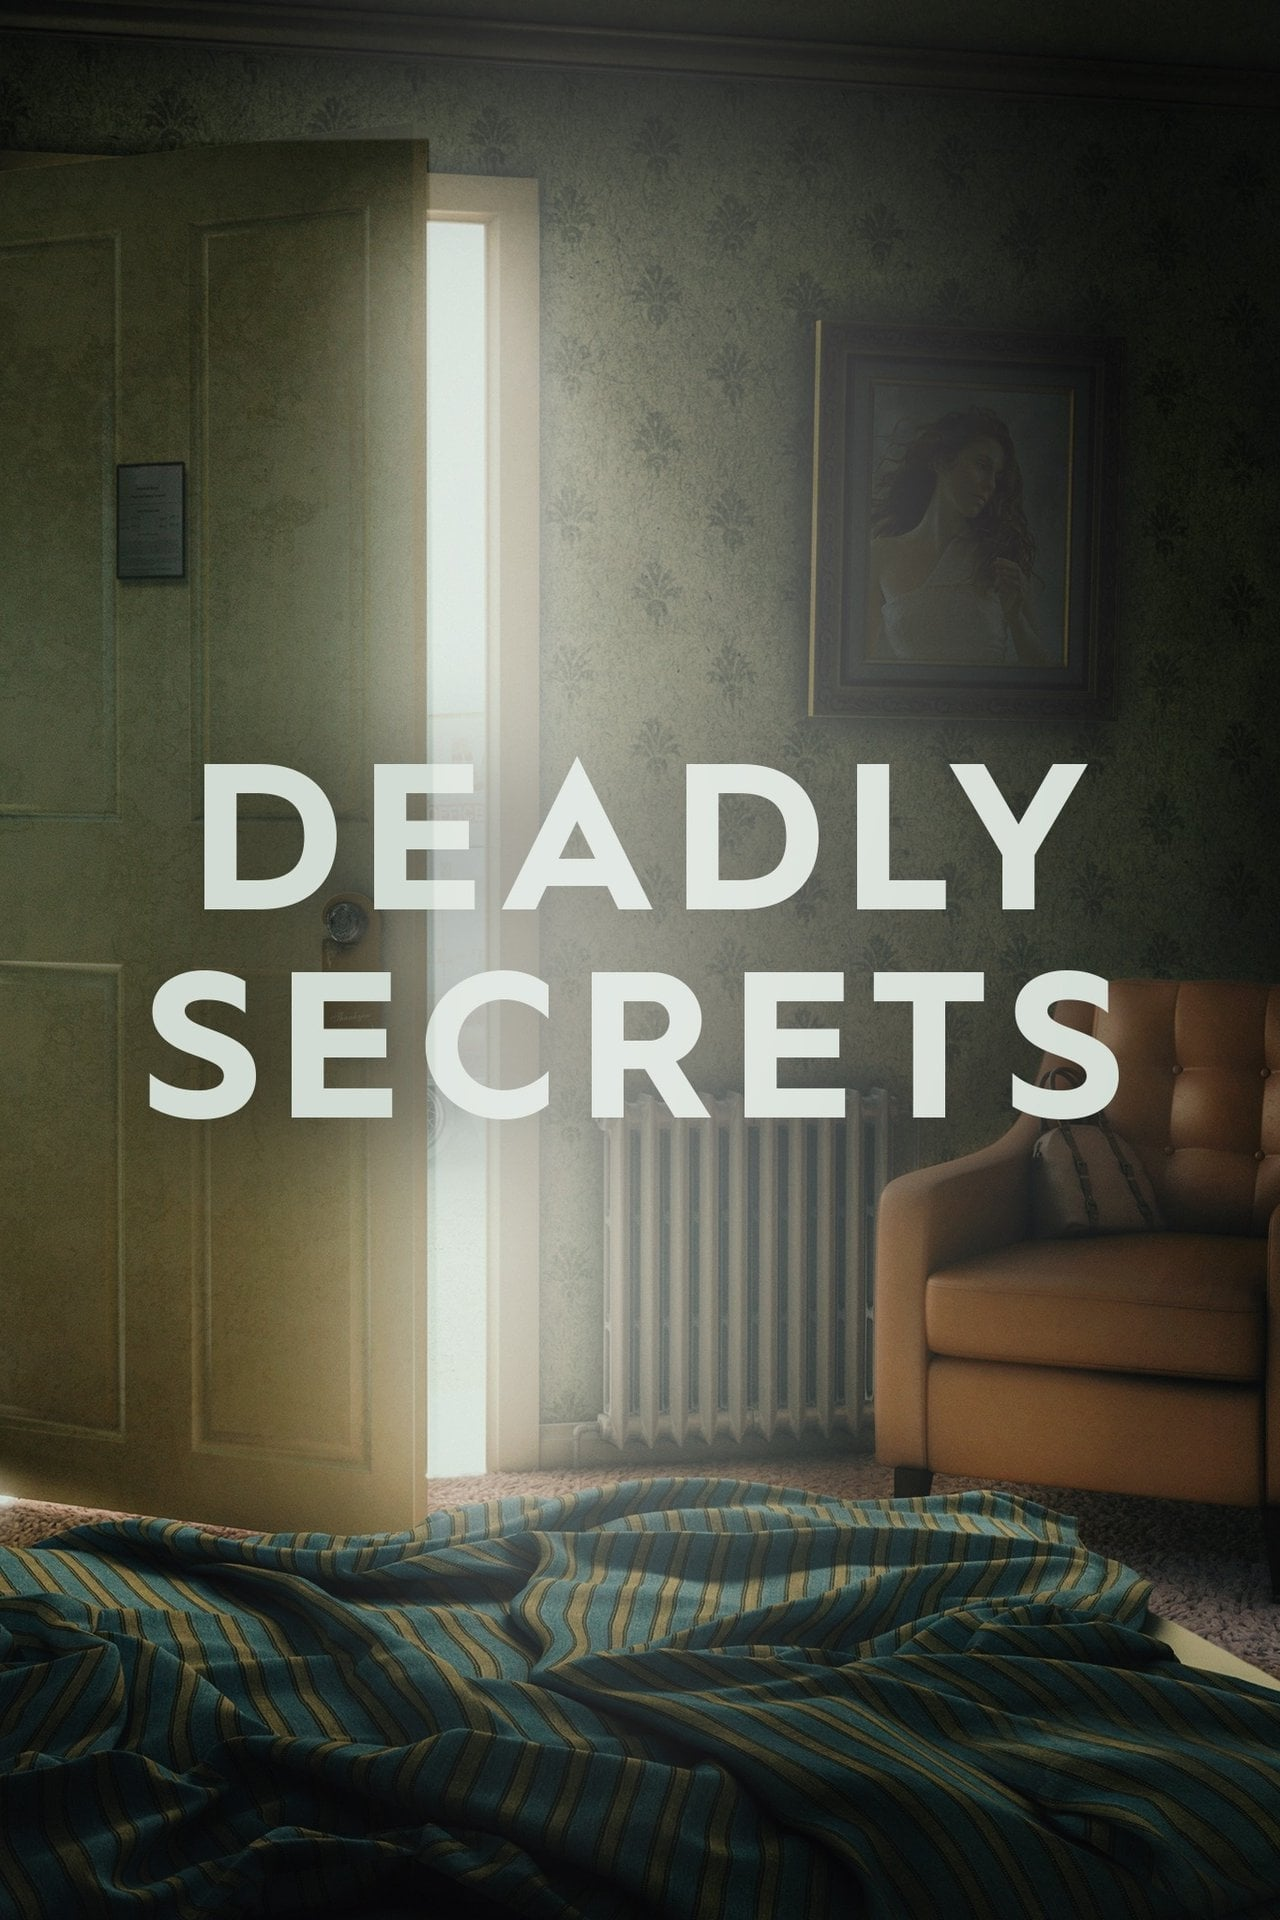 Deadly Secrets Poster